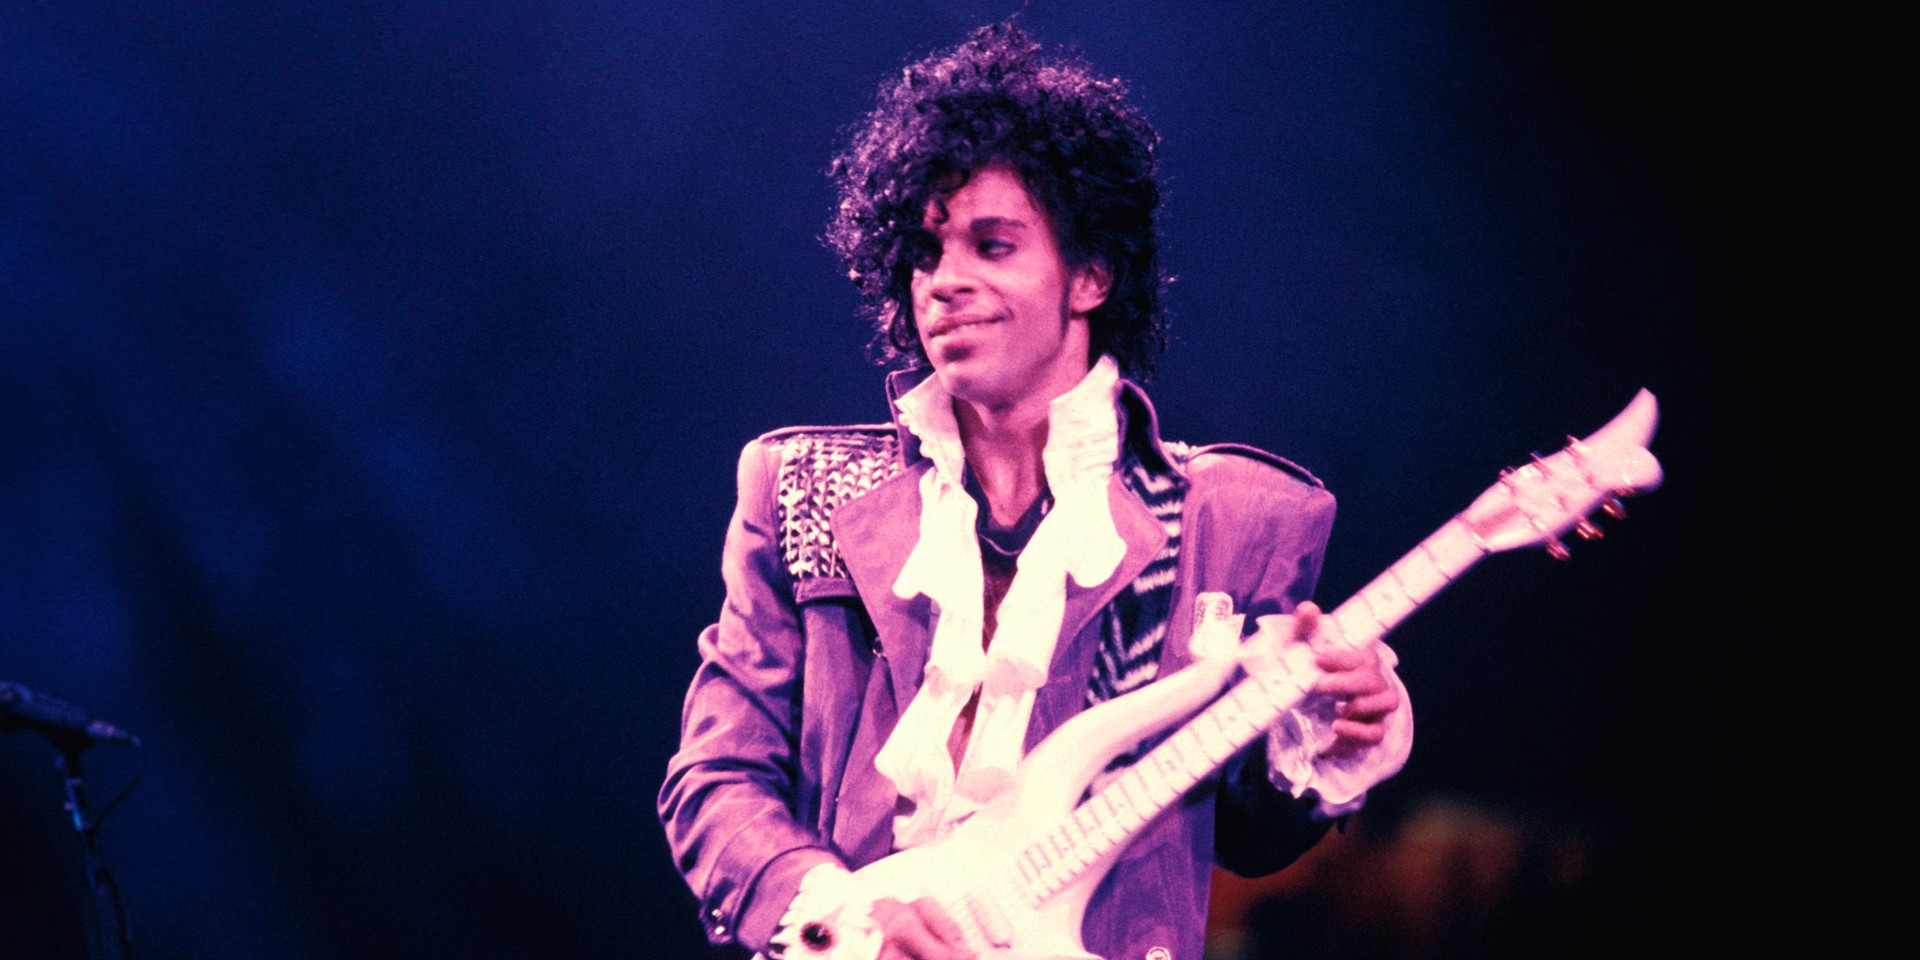 Dru Chen, Reuby, Tim De Cotta and Roze to perform at Prince tribute show